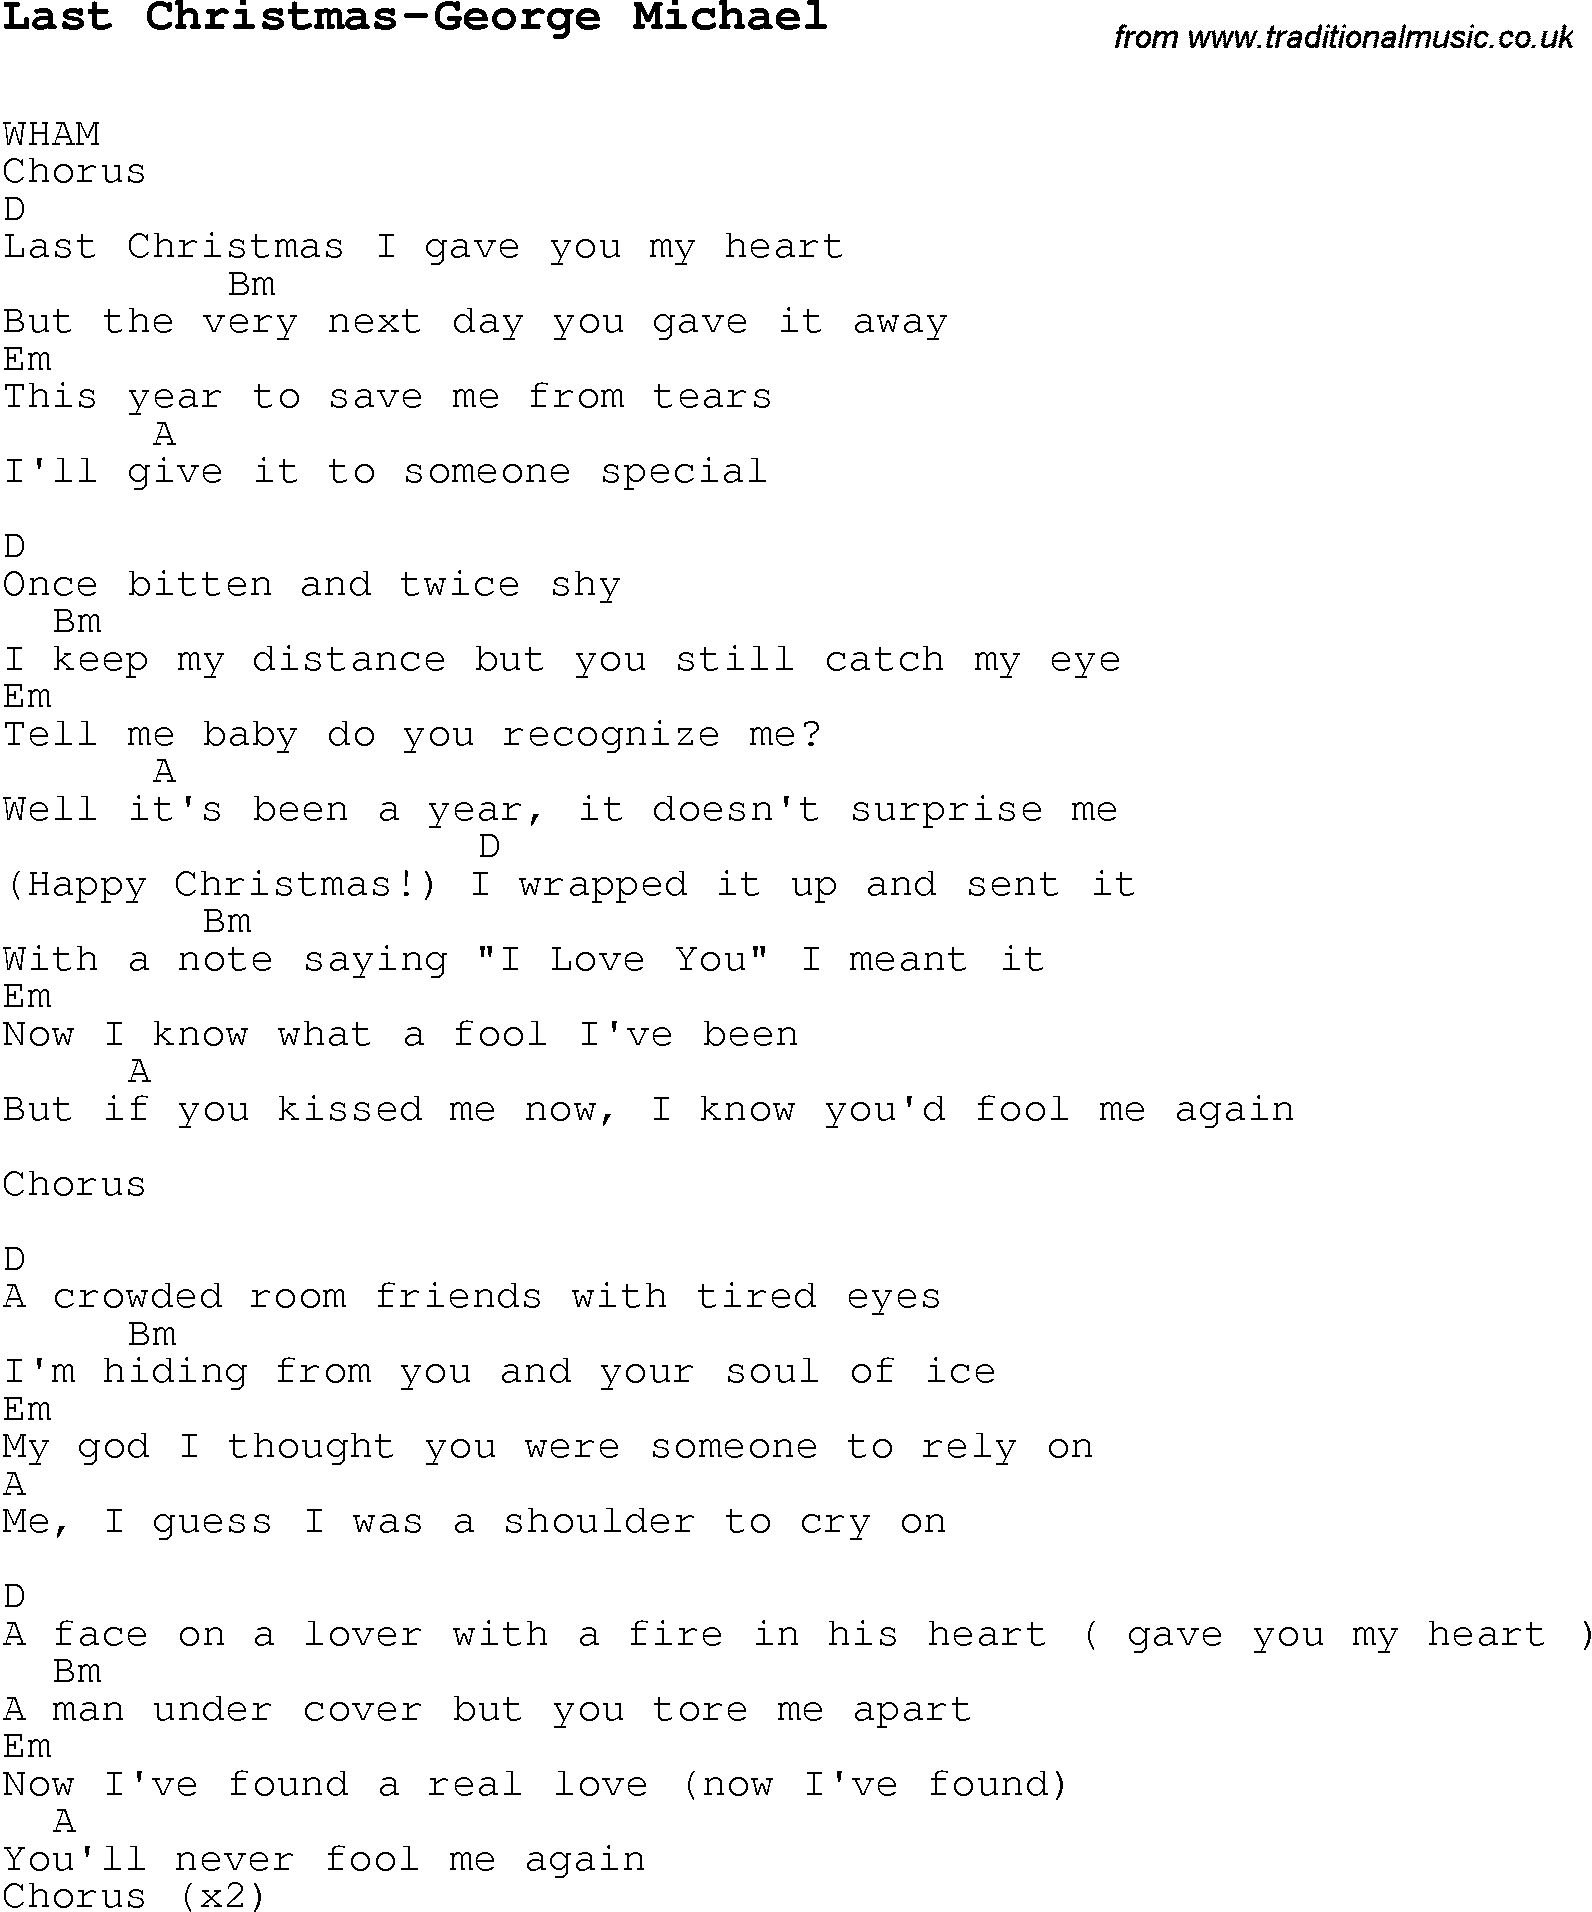 Christmas Carol/Song lyrics with chords for Last Christmas-George ...